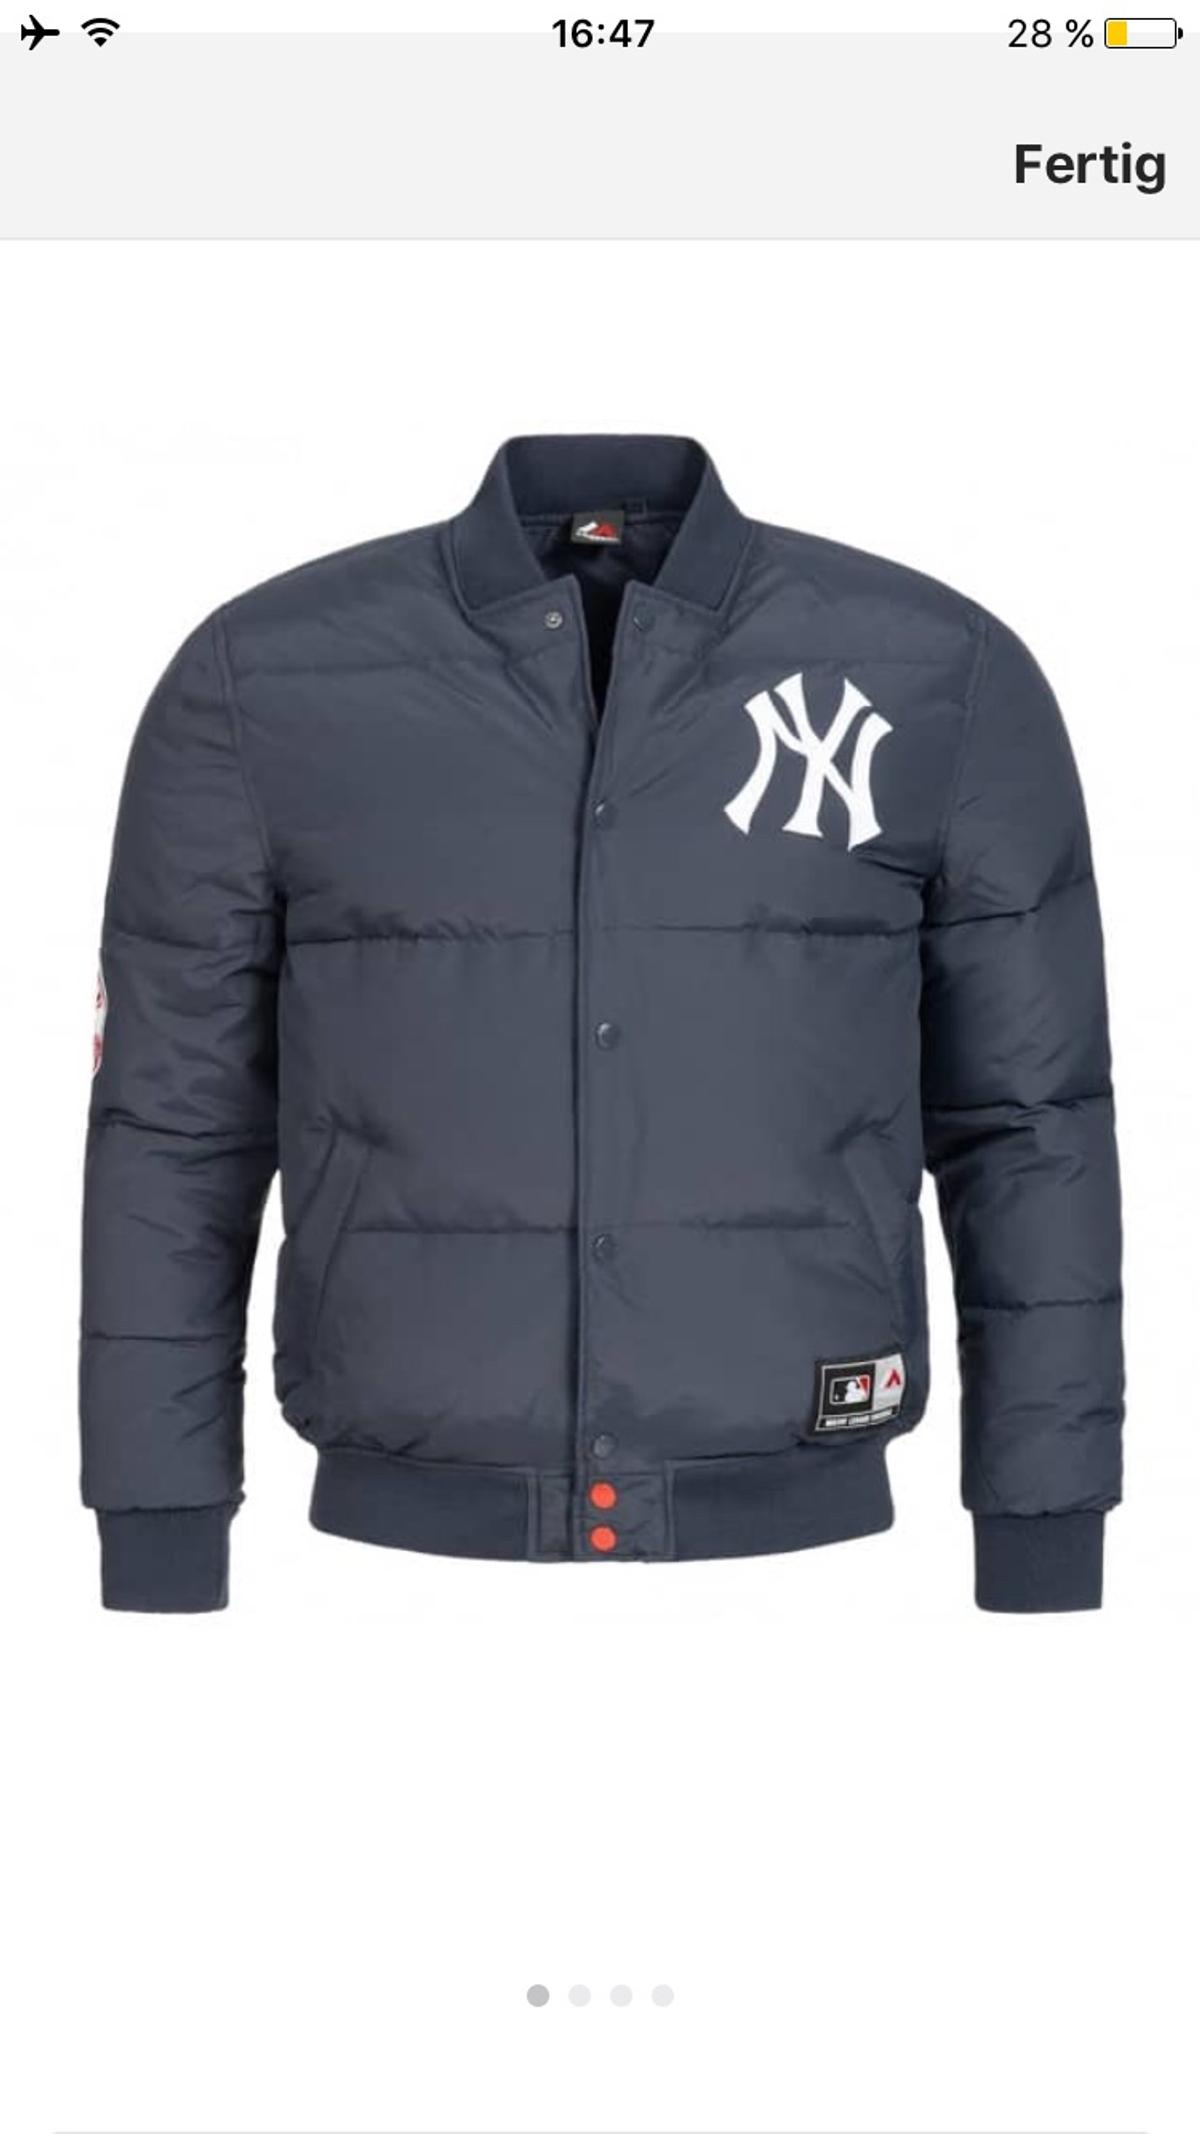 NeuNew For In Größe York Yankees Hamm S 59067 Jacke lFKc3TJ1